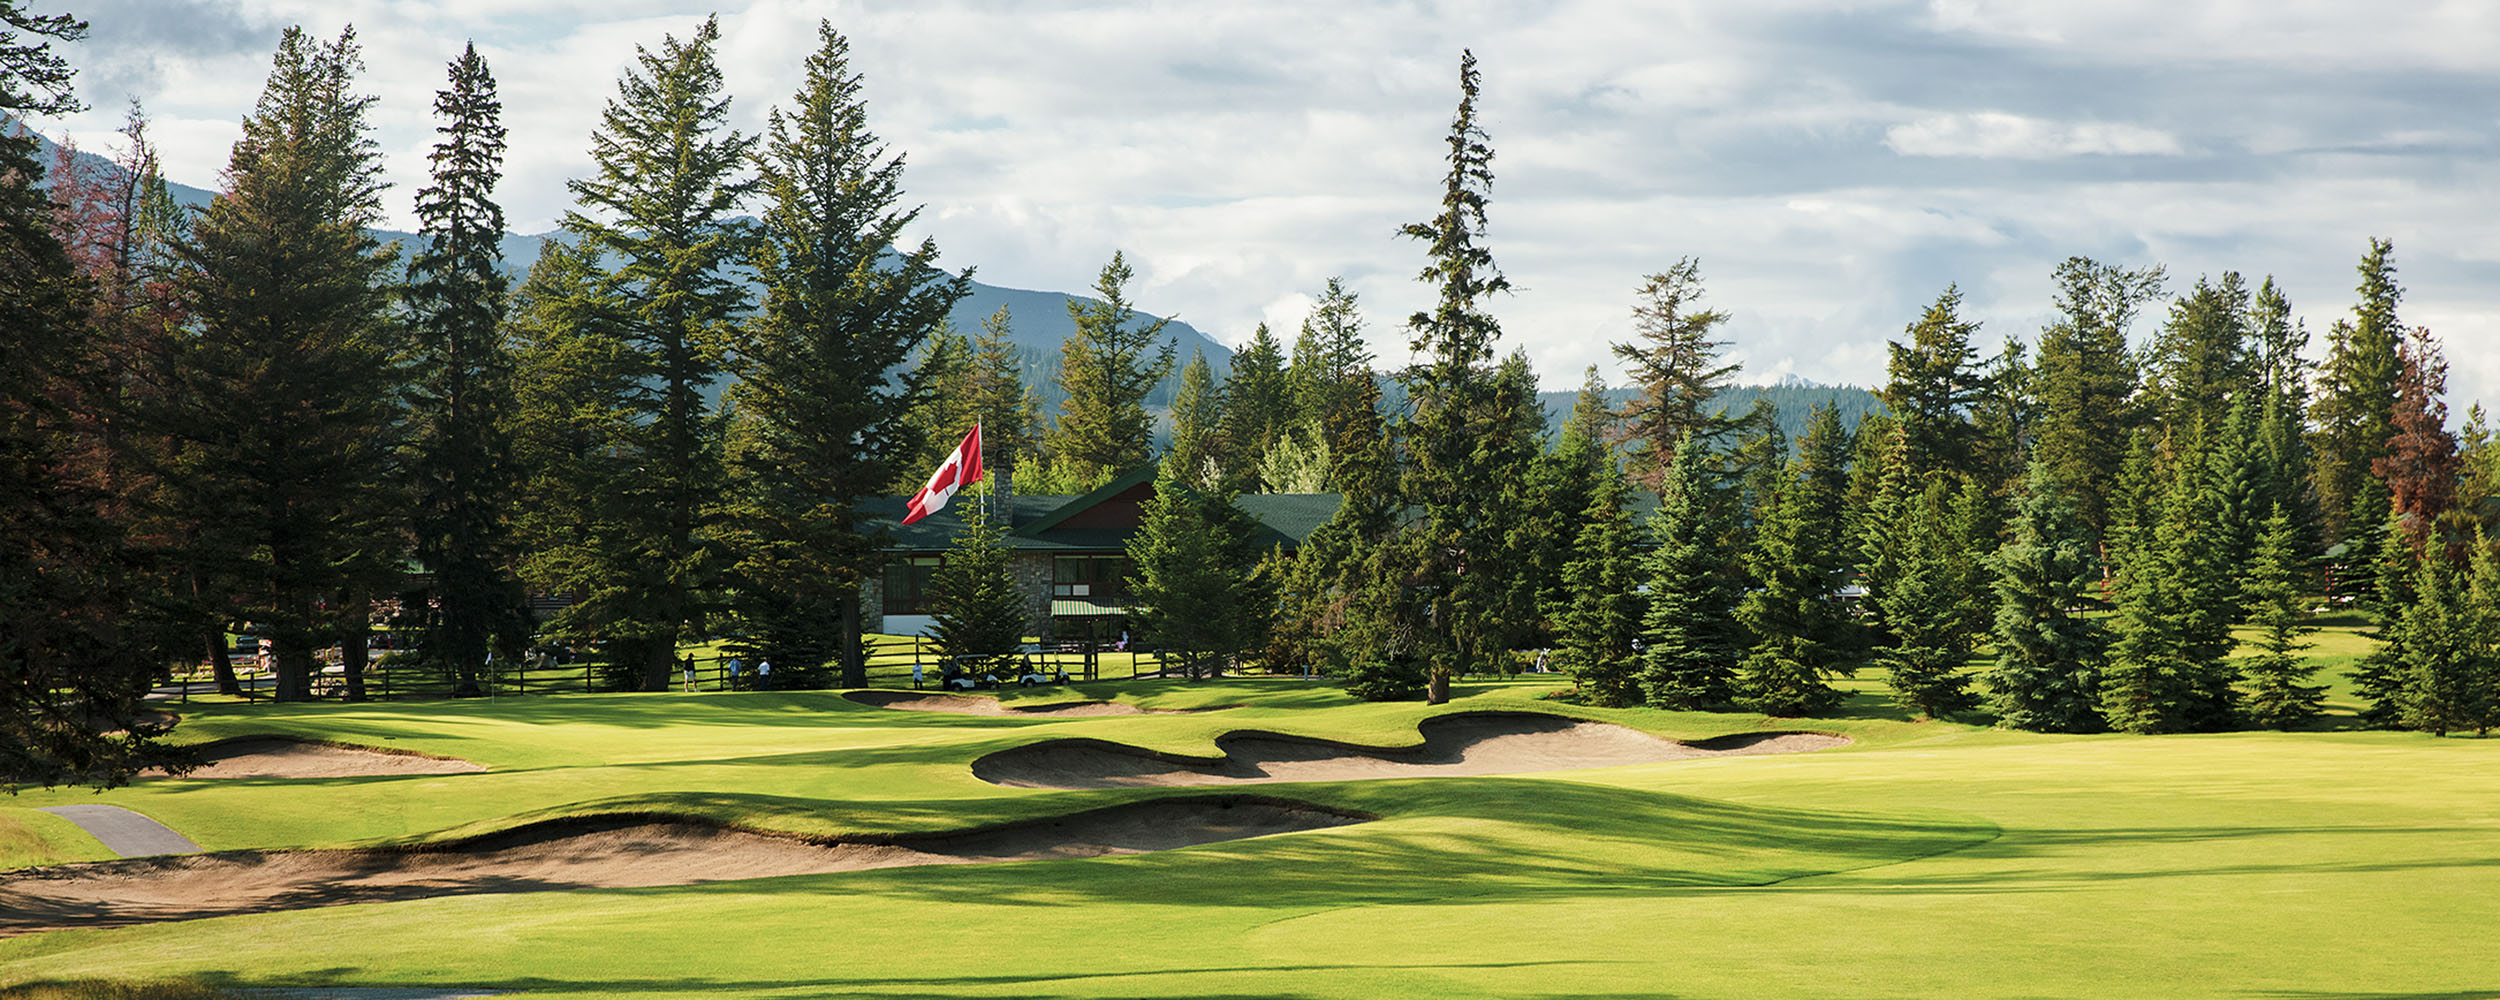 View of the Golf Clubhouse from the 18th hole of Jasper Park Lodge Golf Course